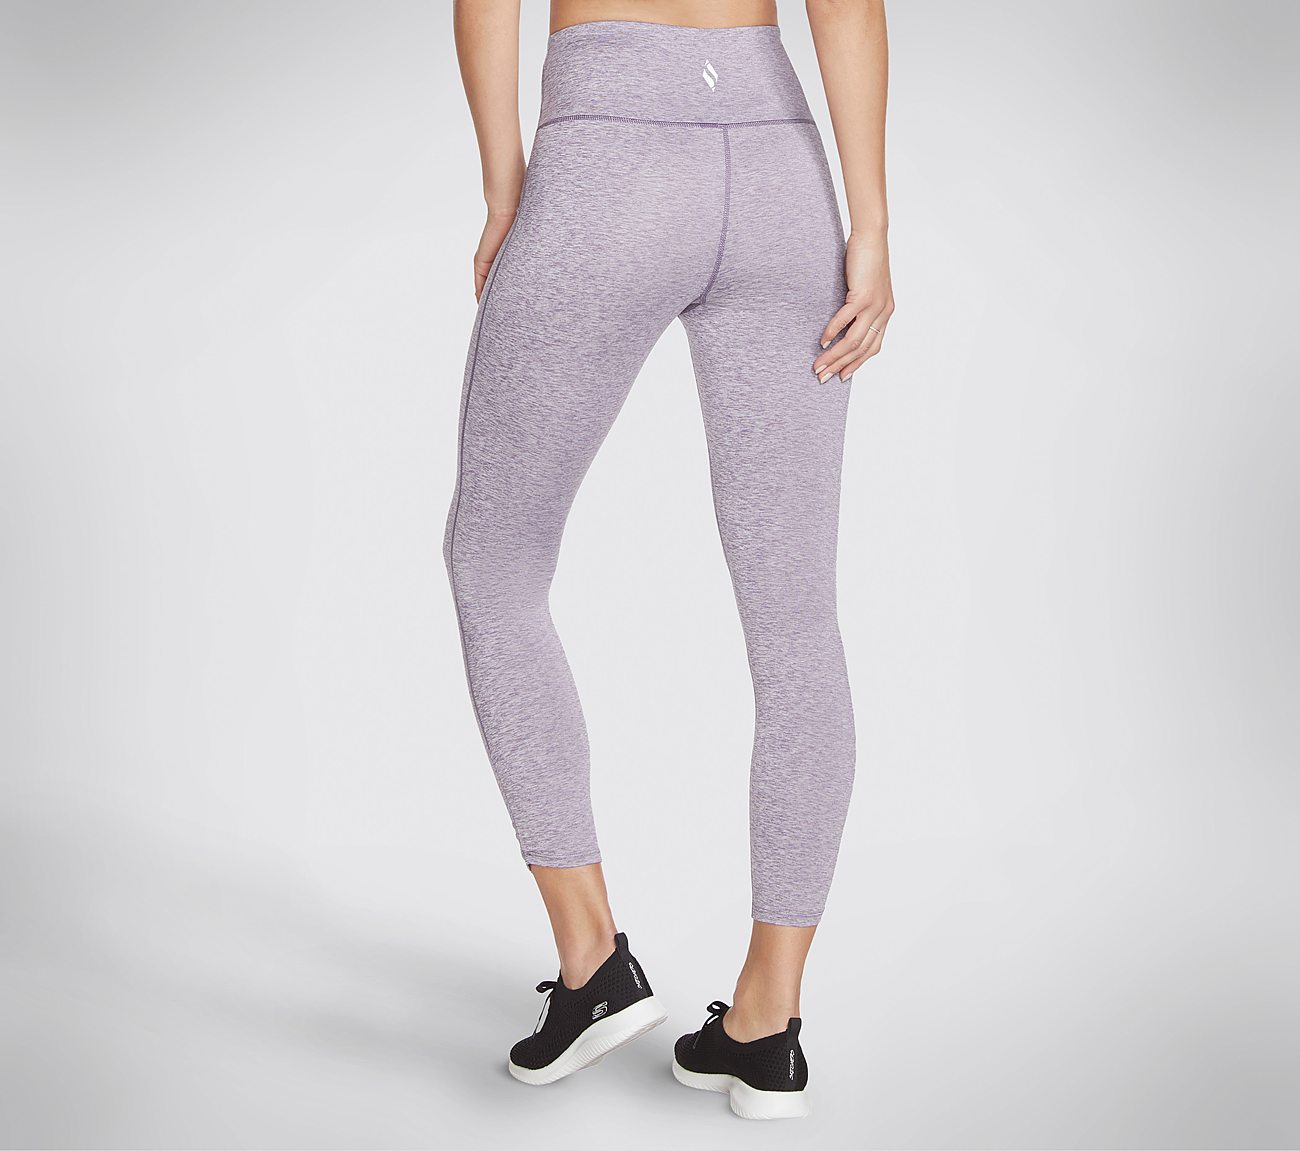 Skechers Apparel Revival High Waisted Legging